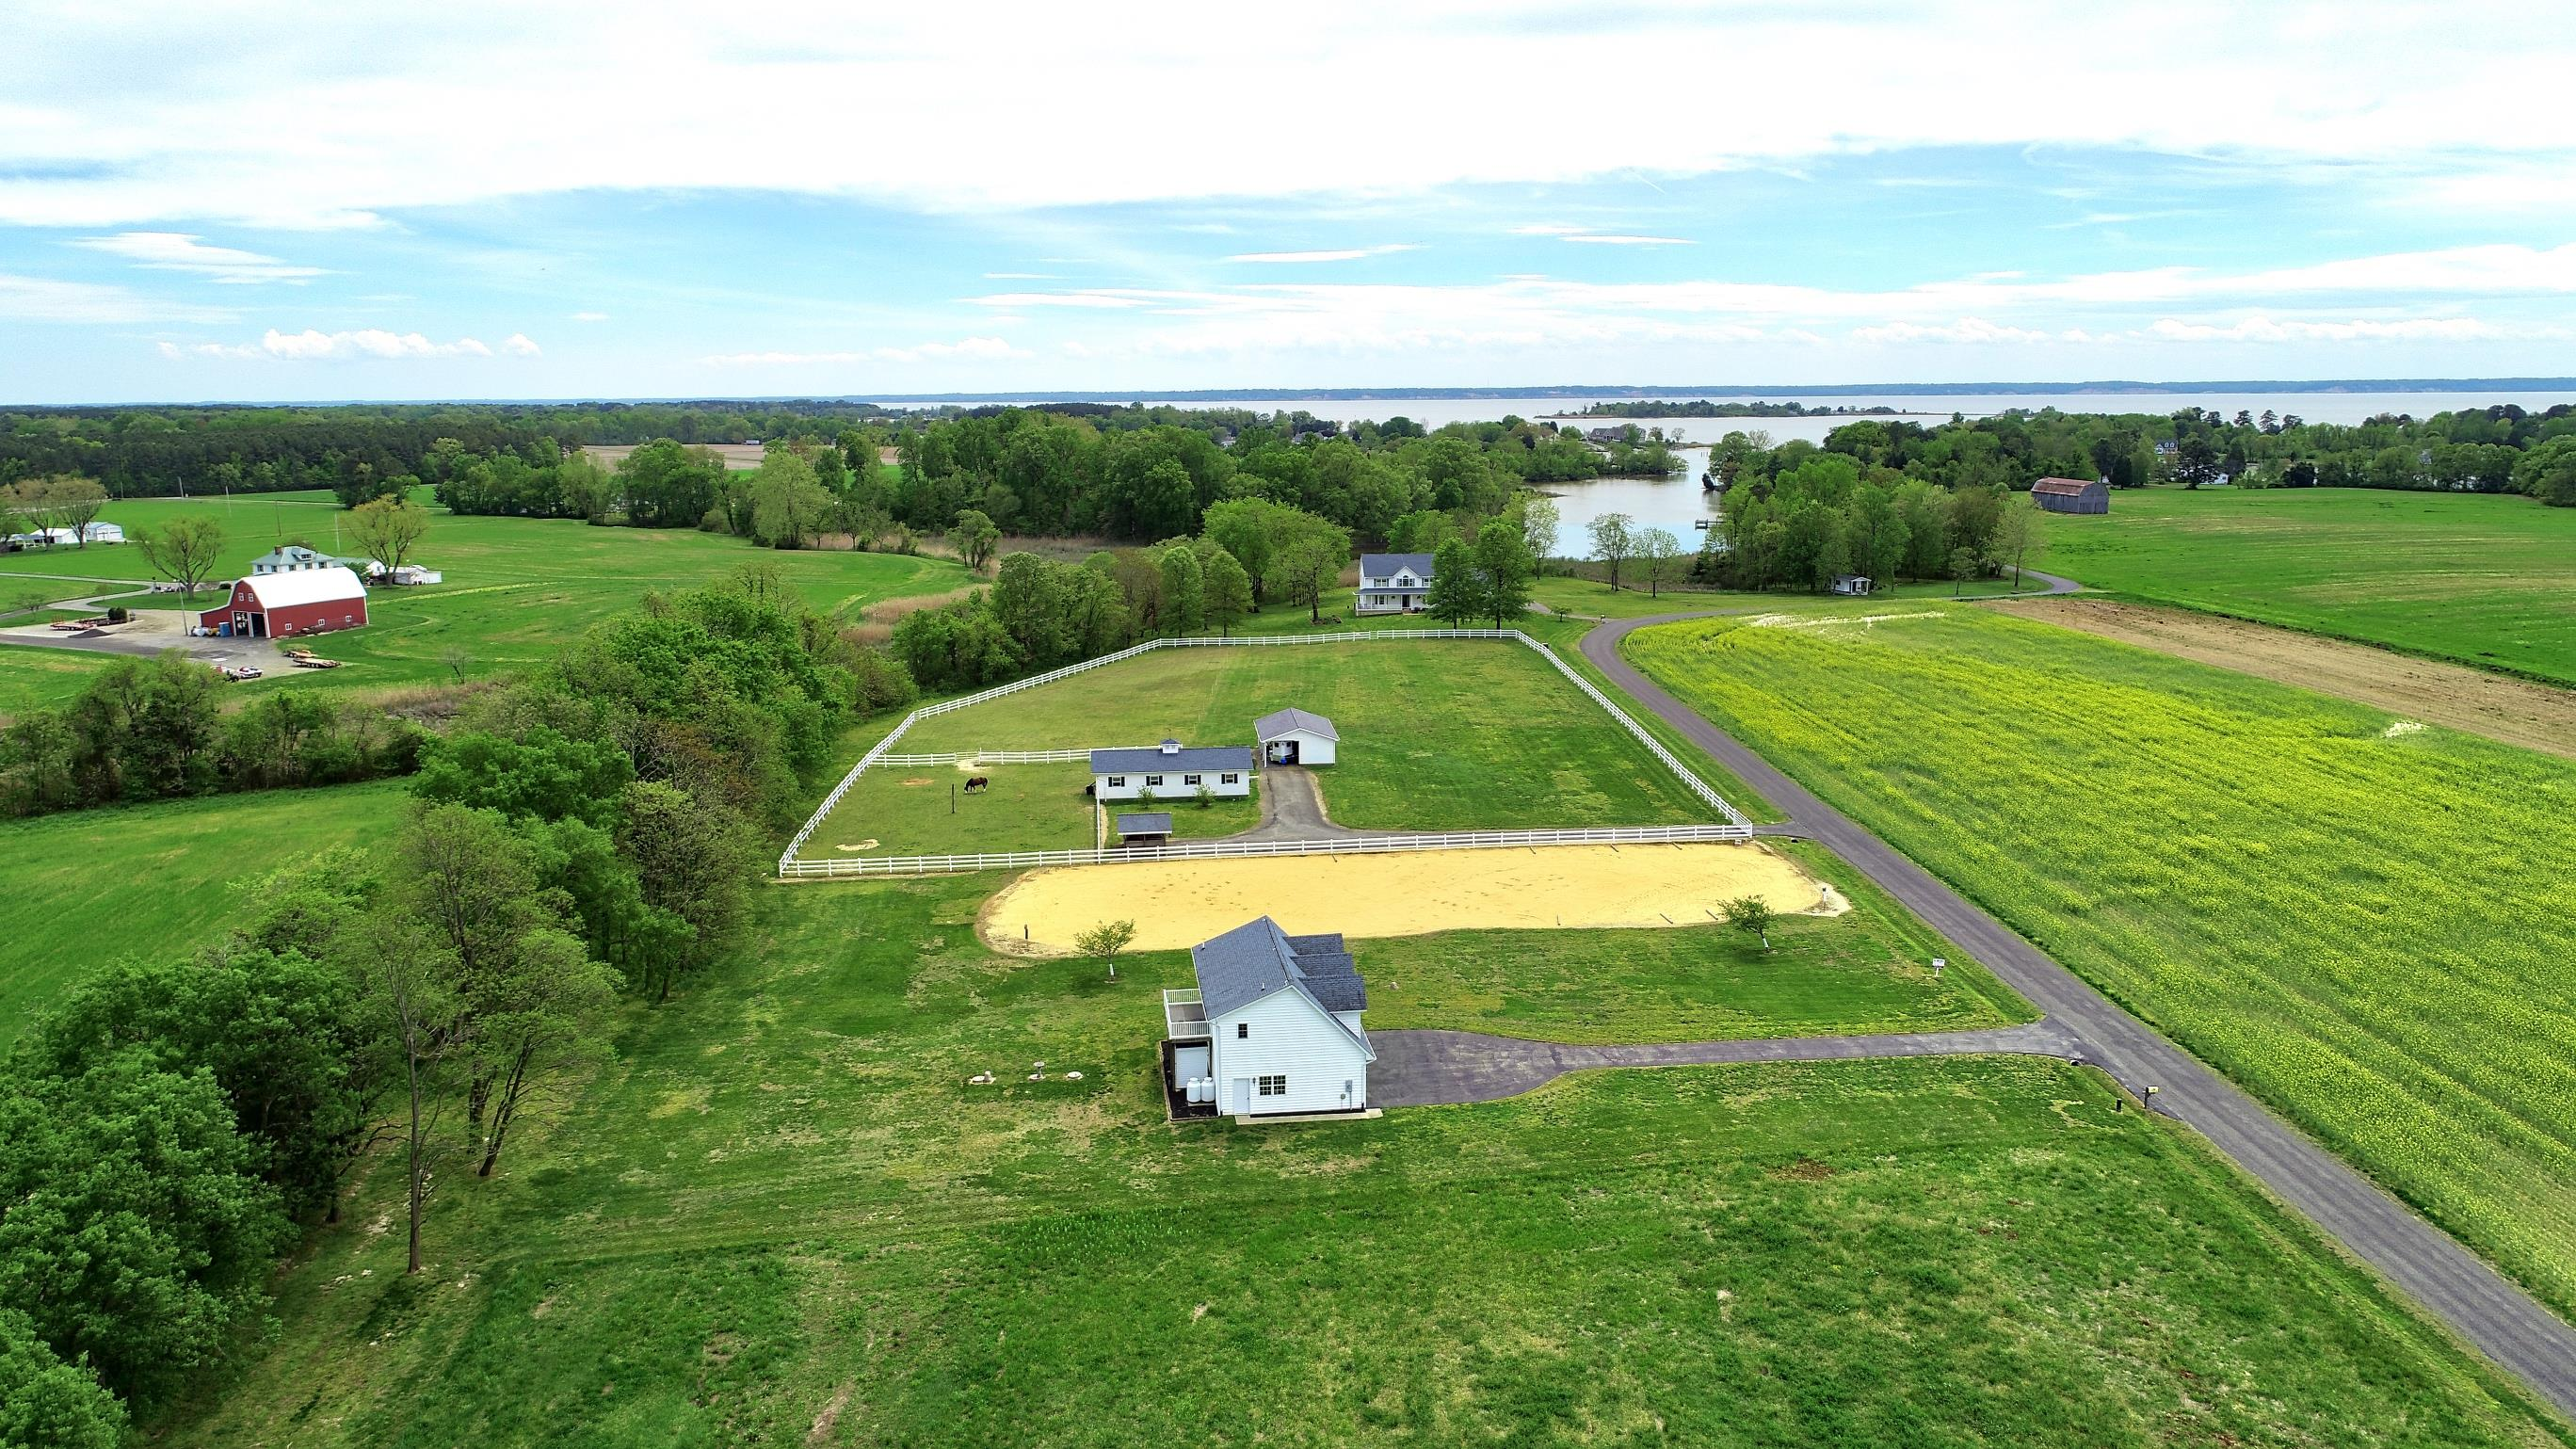 Beautiful Acreage!  Waterfront Property!  Horse Farm in Southern Maryland!  This Saint Marys County Waterfront Property has been listed by Marie Lally, Realtor with O'Brien Realty!